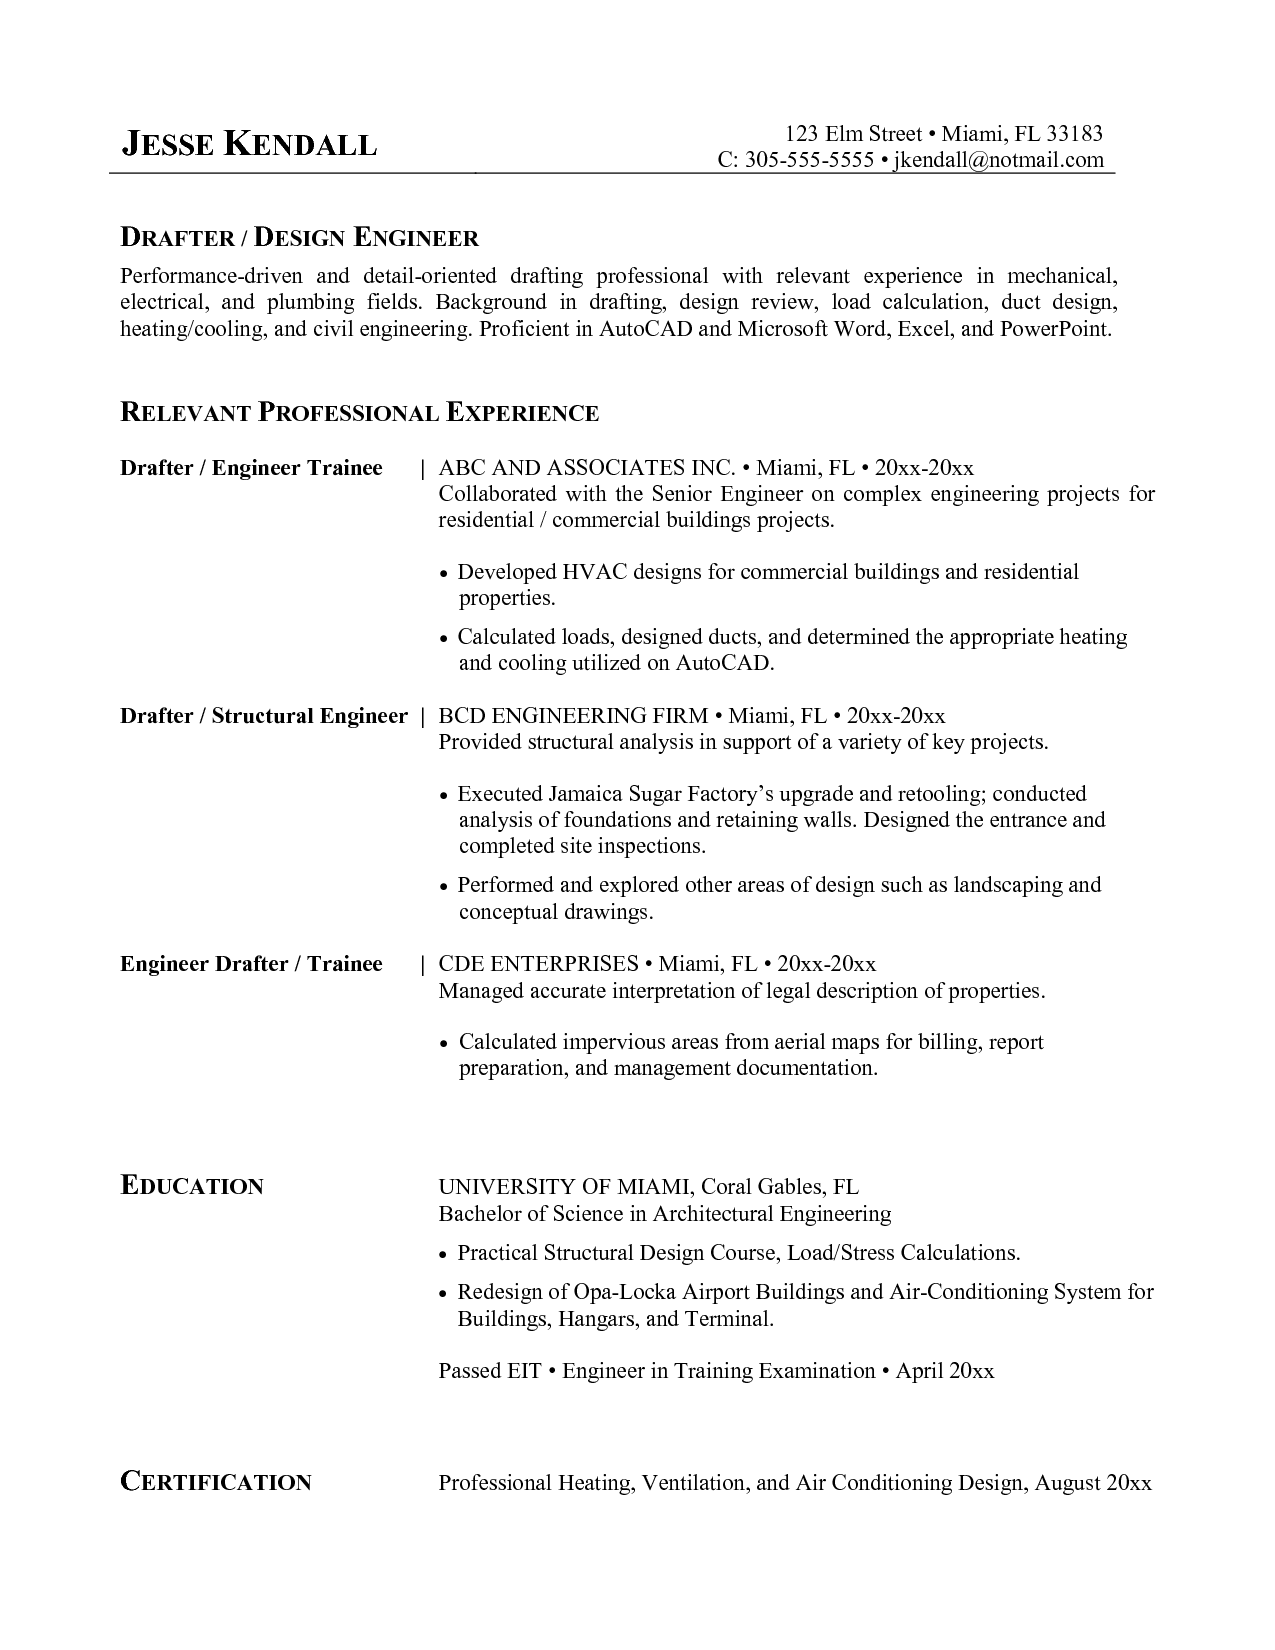 Hvac Resume Template Great Hvac Resume Samplehvac Resume Samples Templateshvac